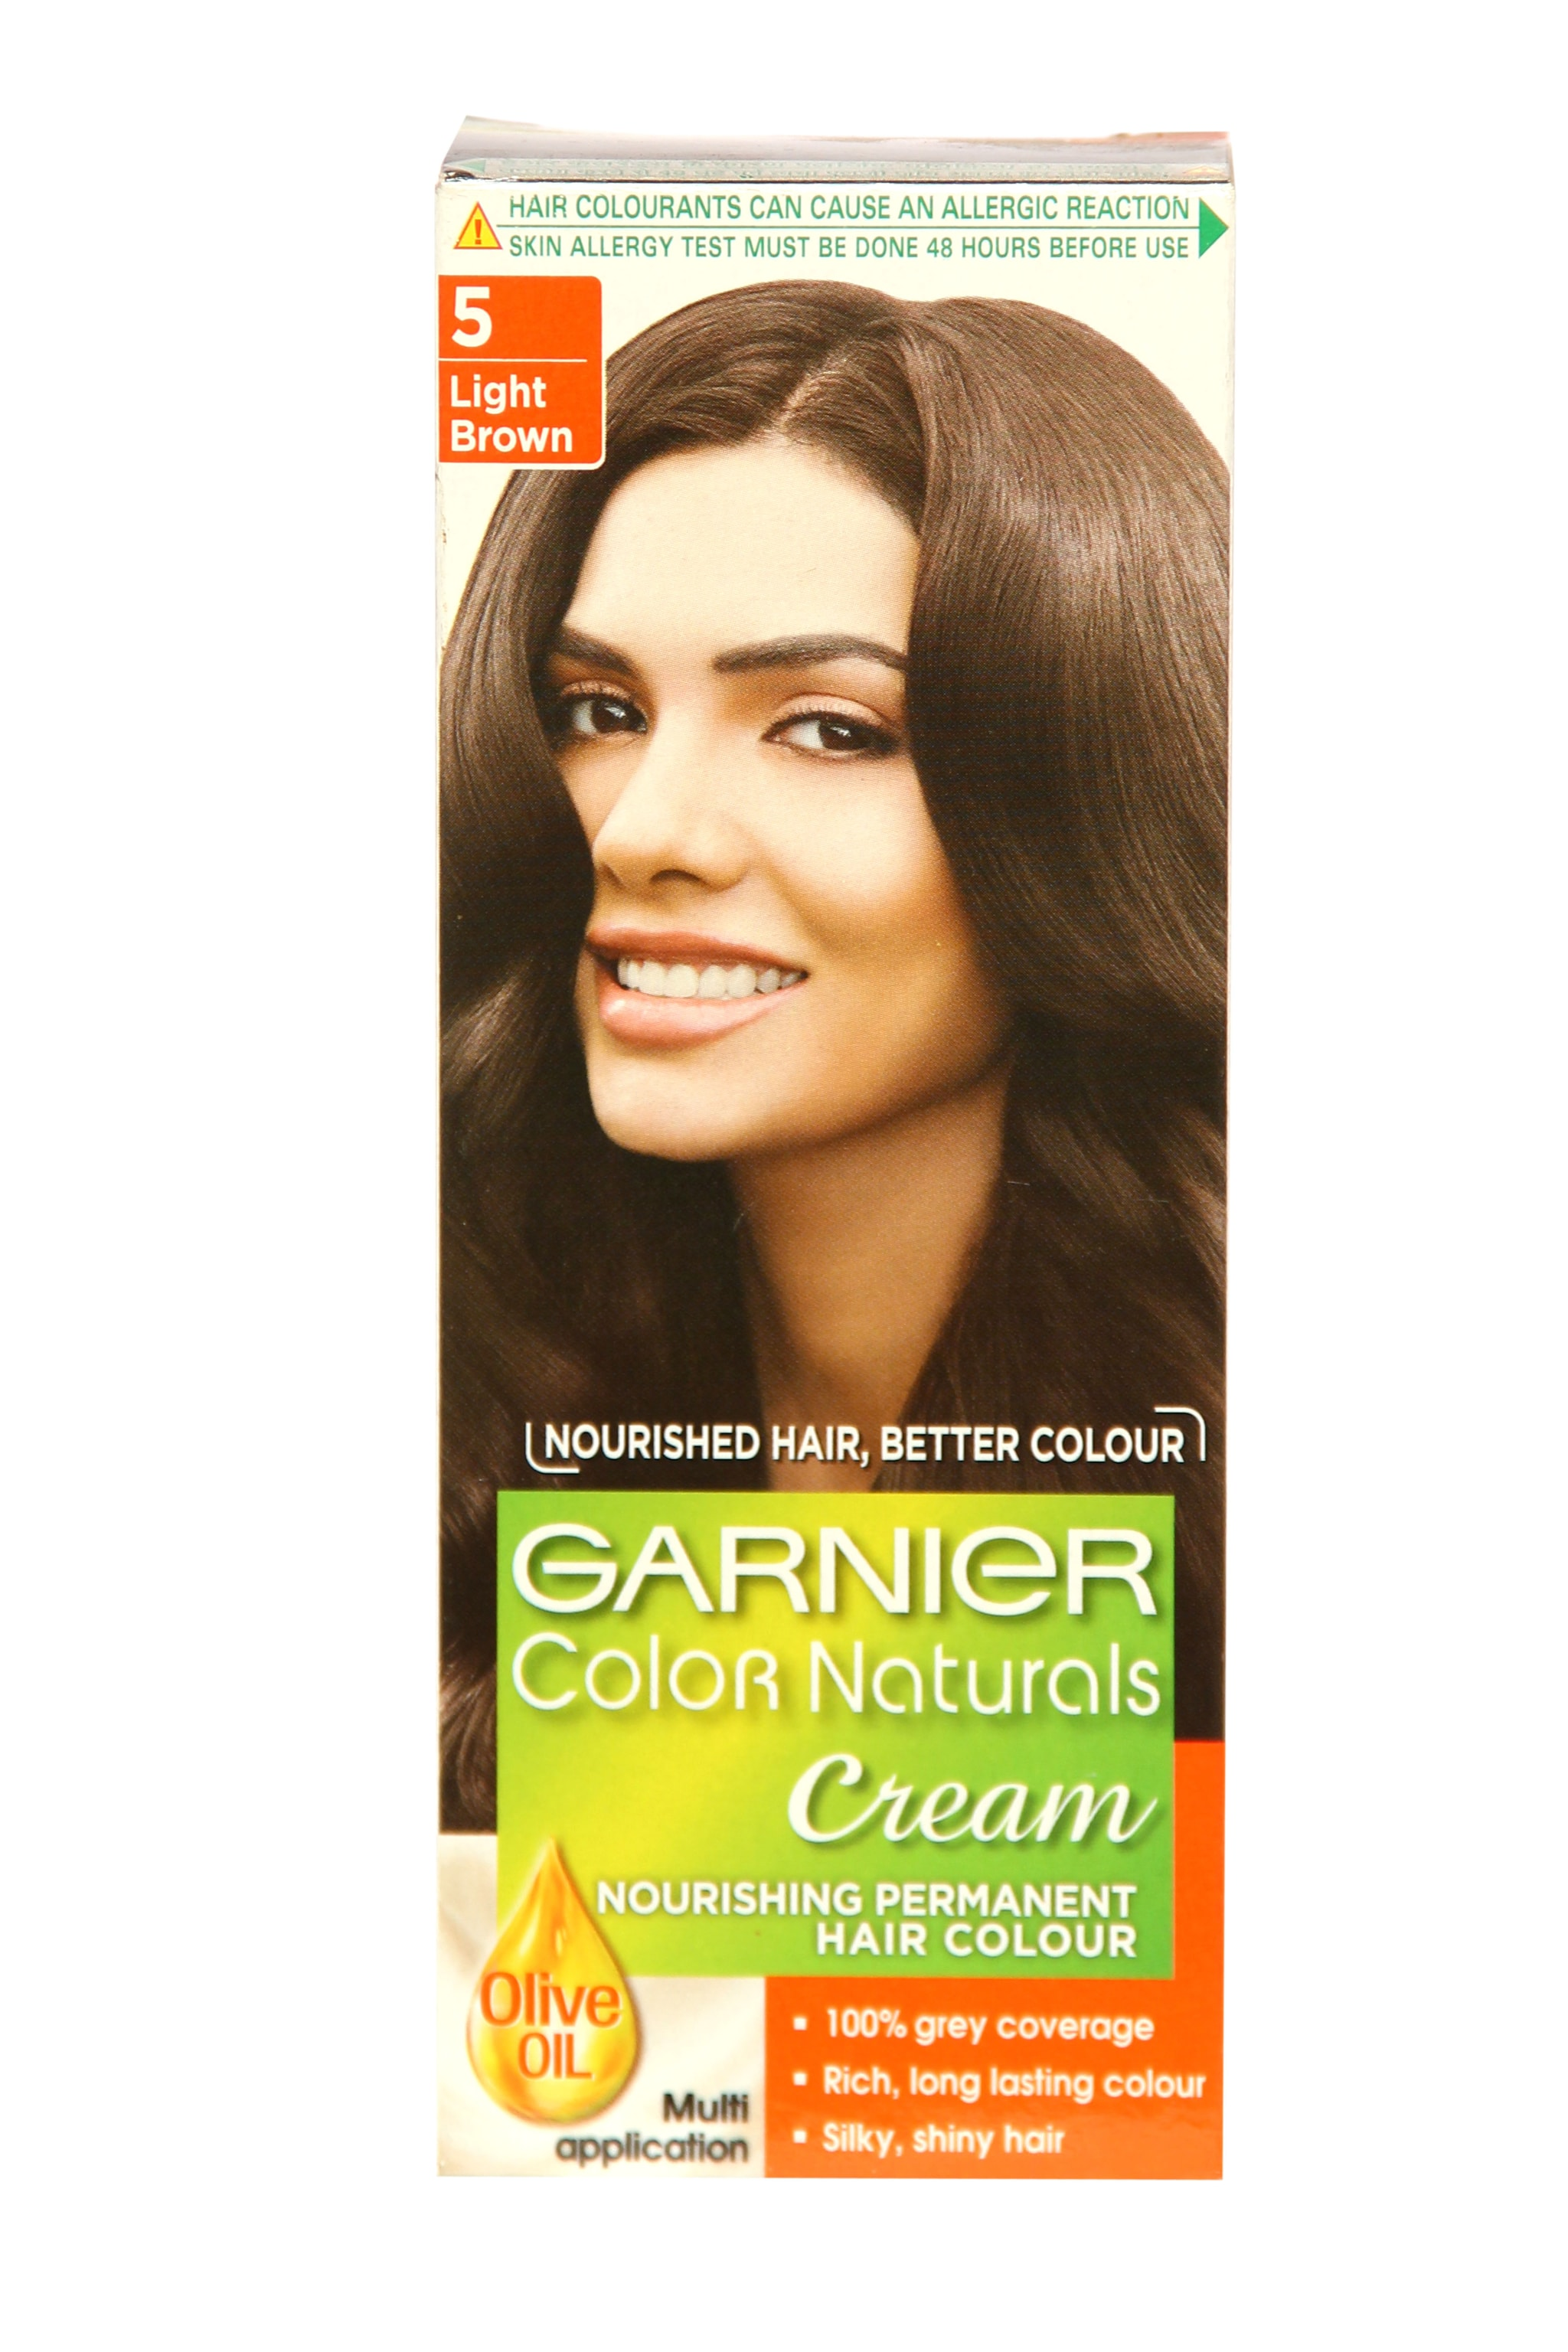 Garnier Color Naturals Light Brown Shade 5 Hair Color